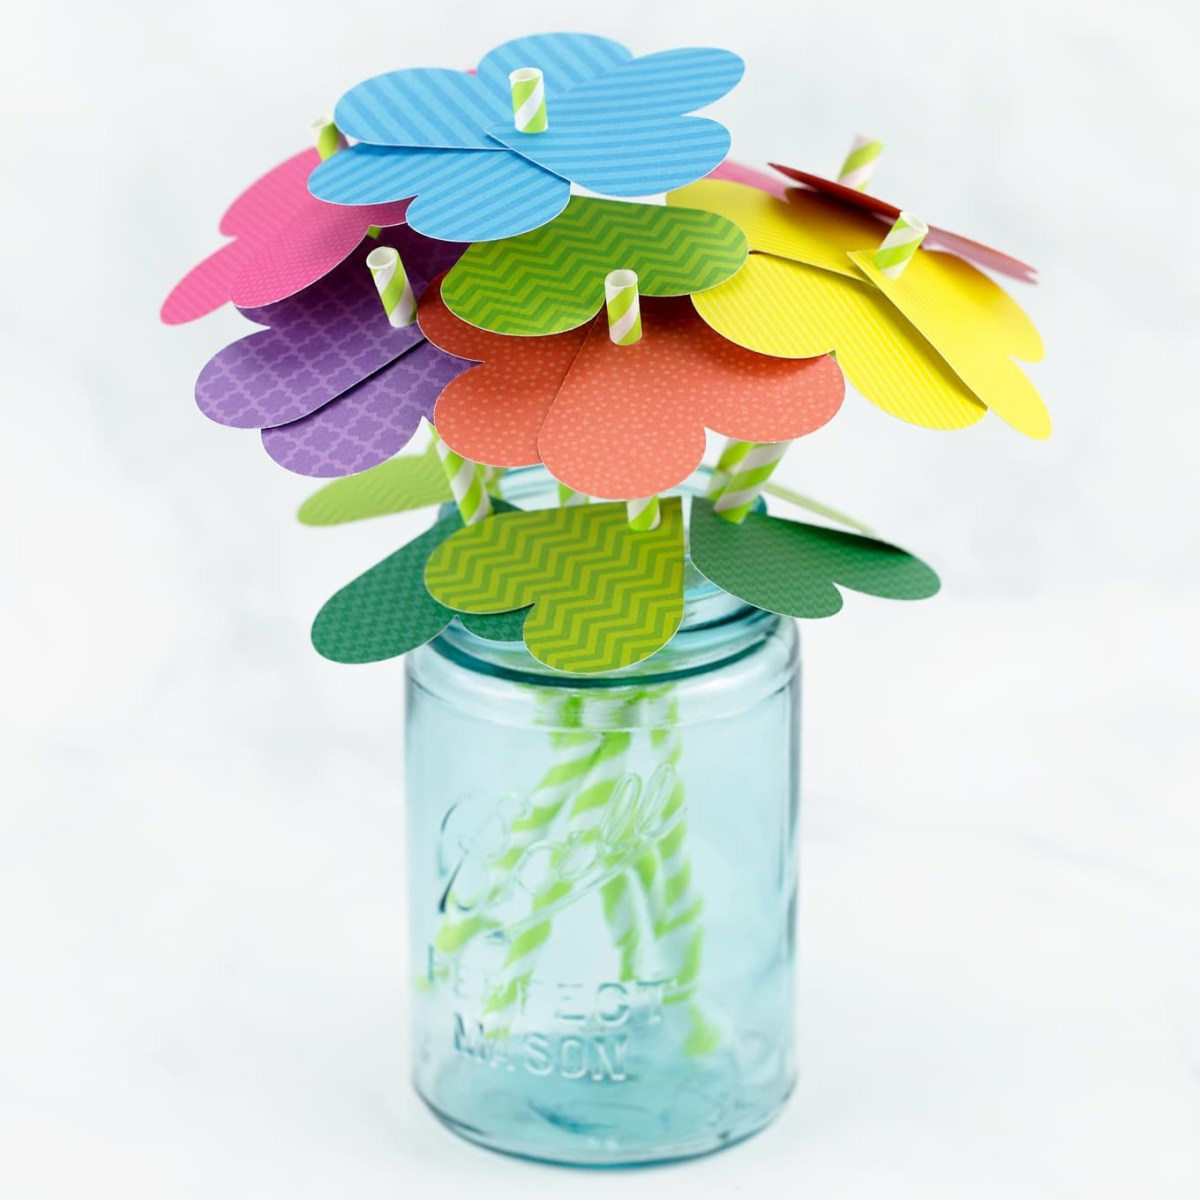 A bouquet of paper heart flowers DIY Inspire Flower Crafts Ideas Your Kids Can Create With Or Without You